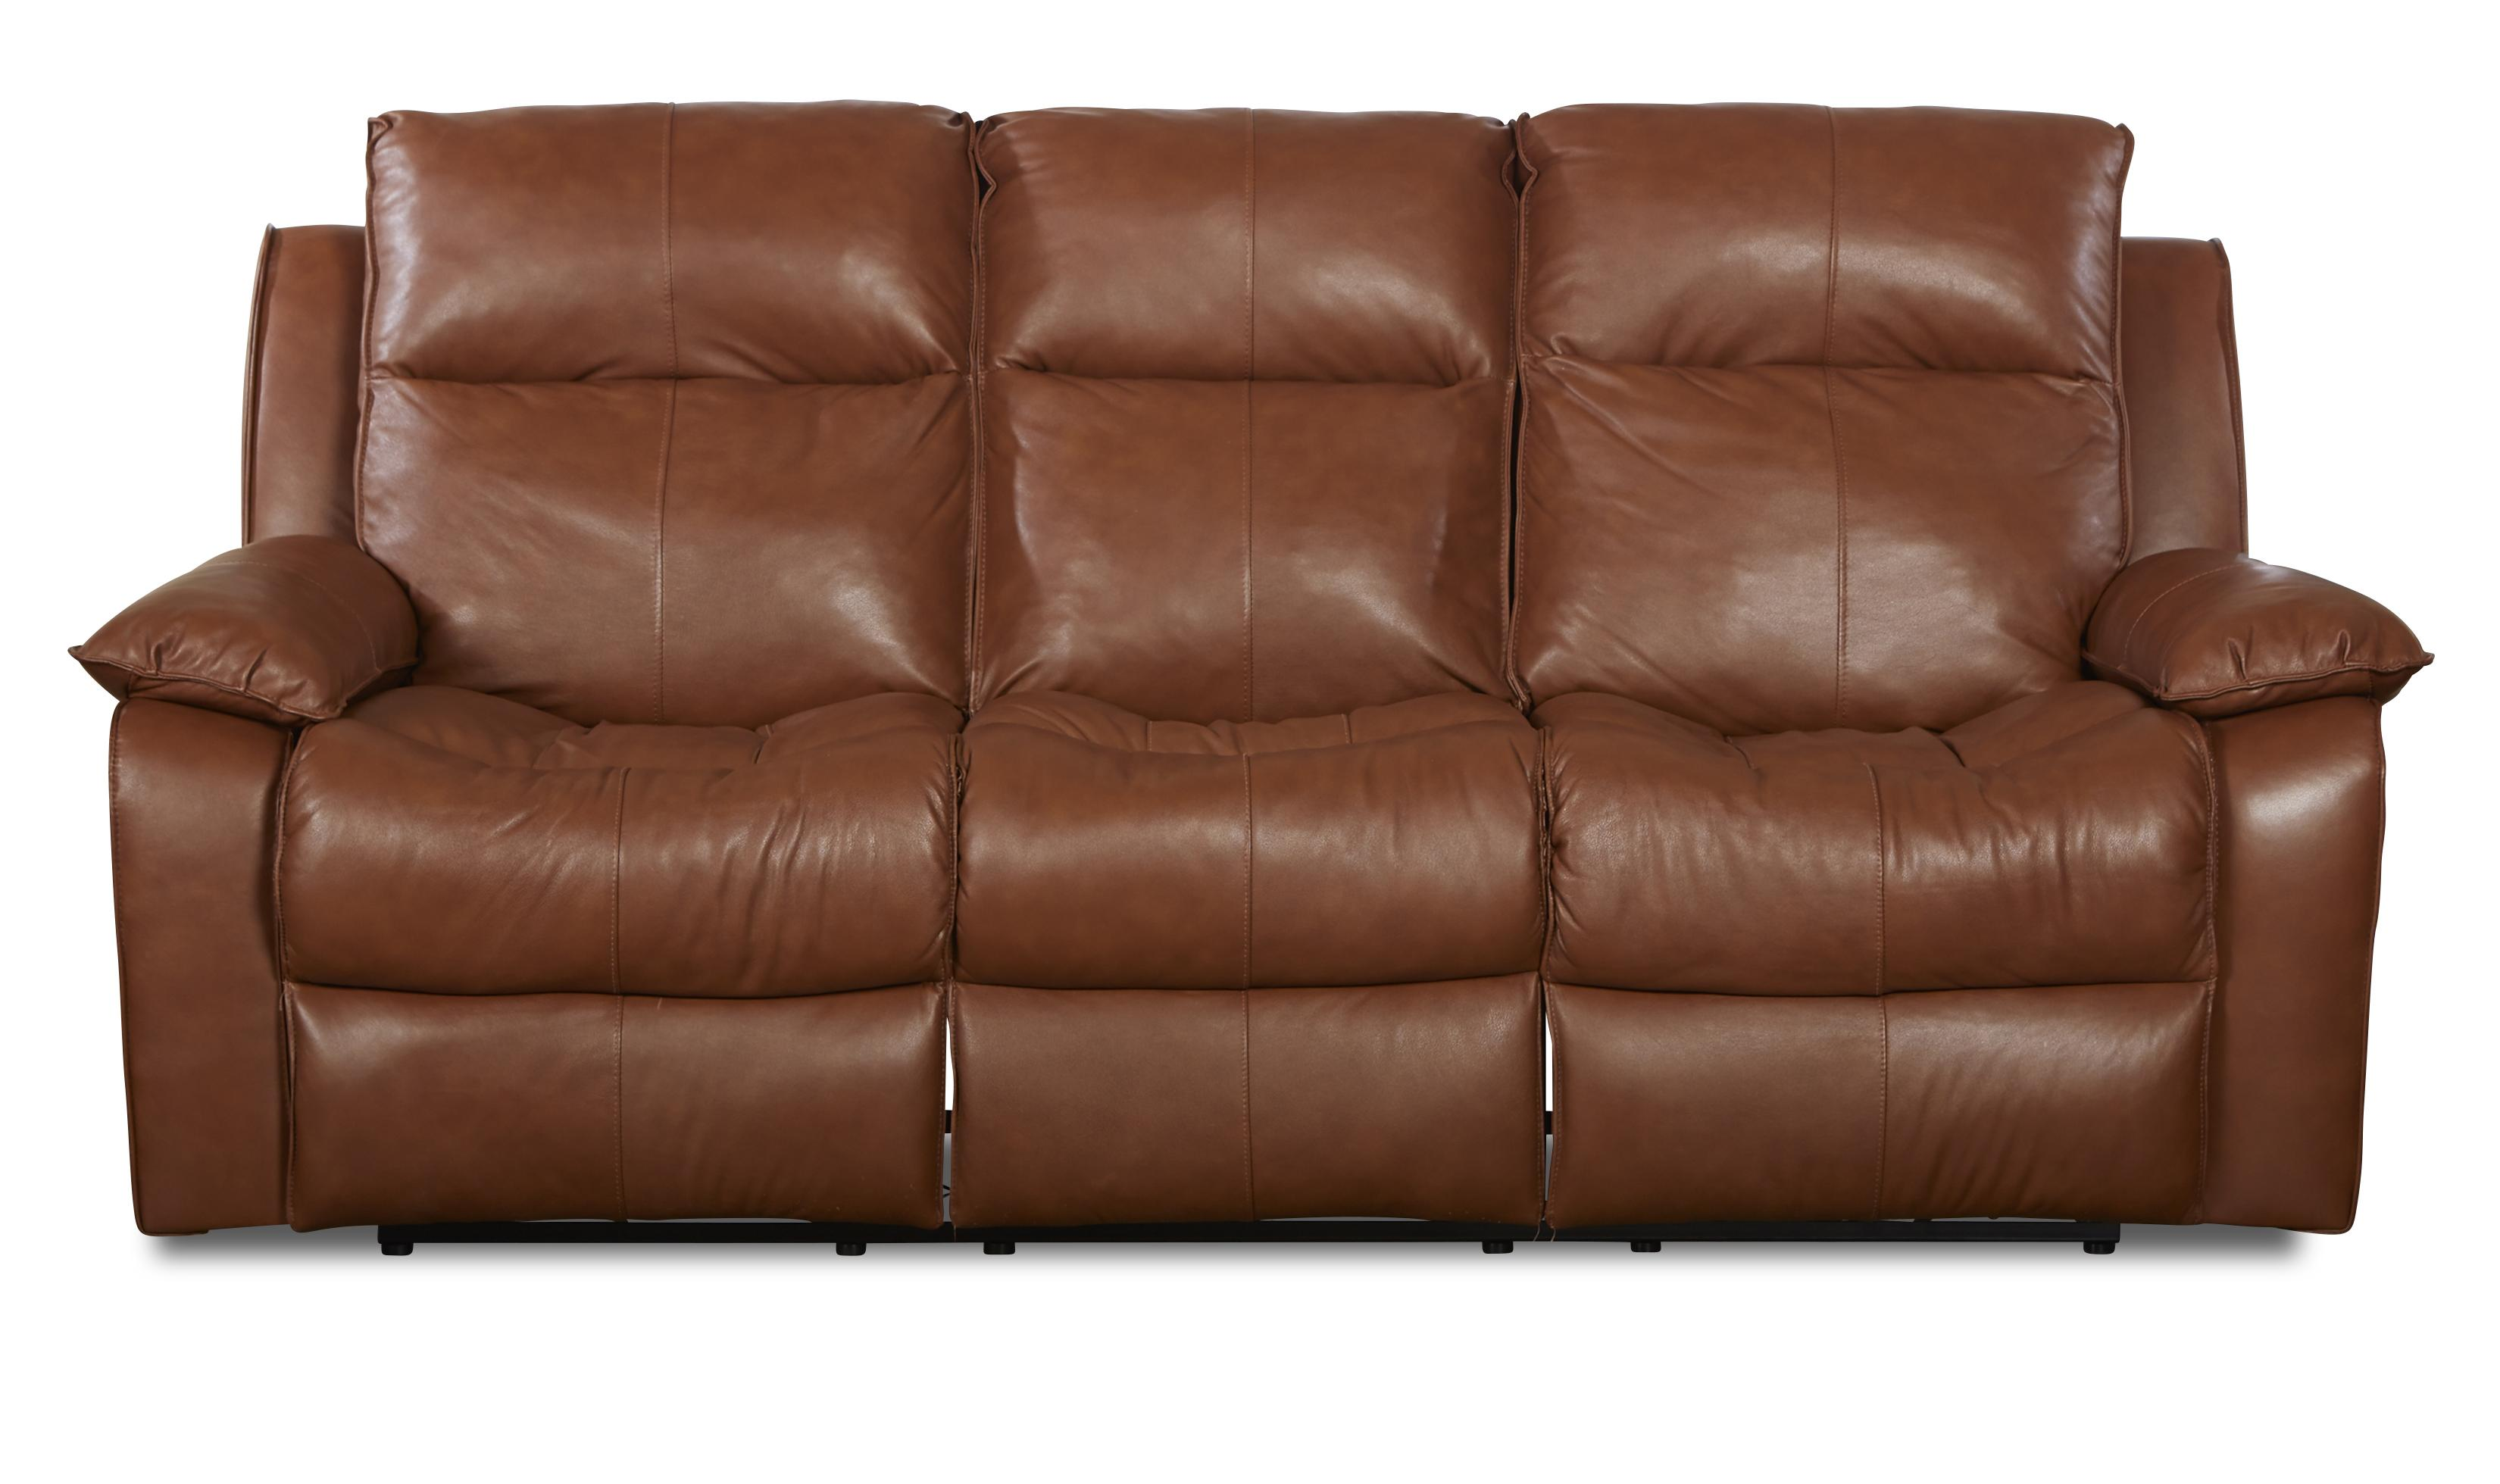 Castaway Casual Power Reclining Sofa by Klaussner at Johnny Janosik